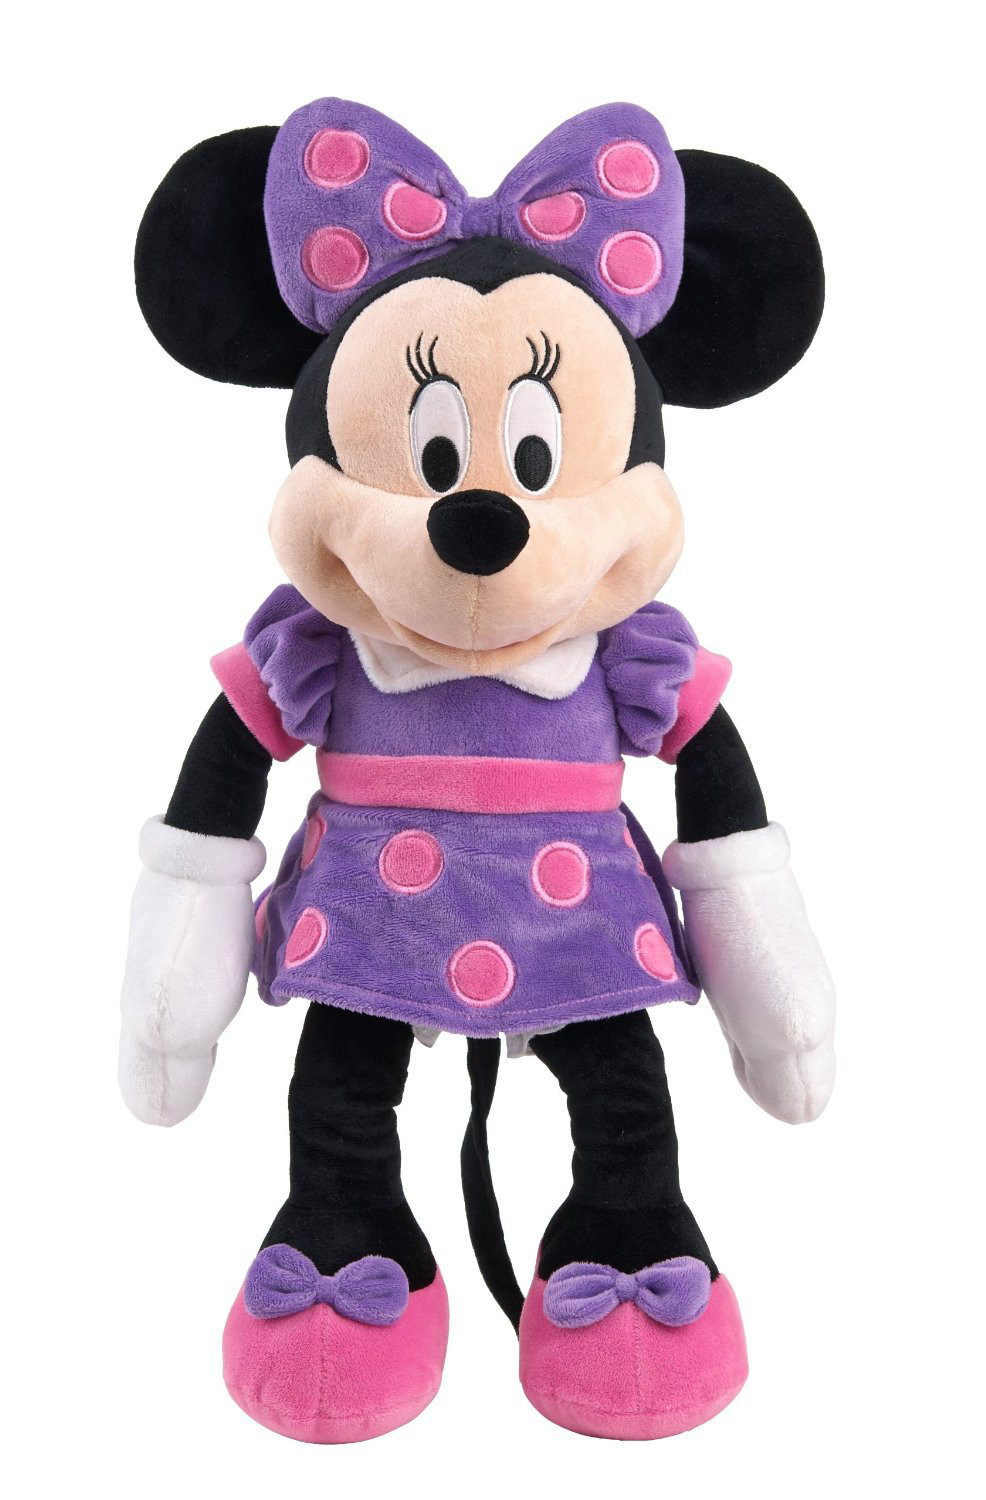 Popular Purple Minnie Mouse Buy Cheap Purple Minnie Mouse Lots From